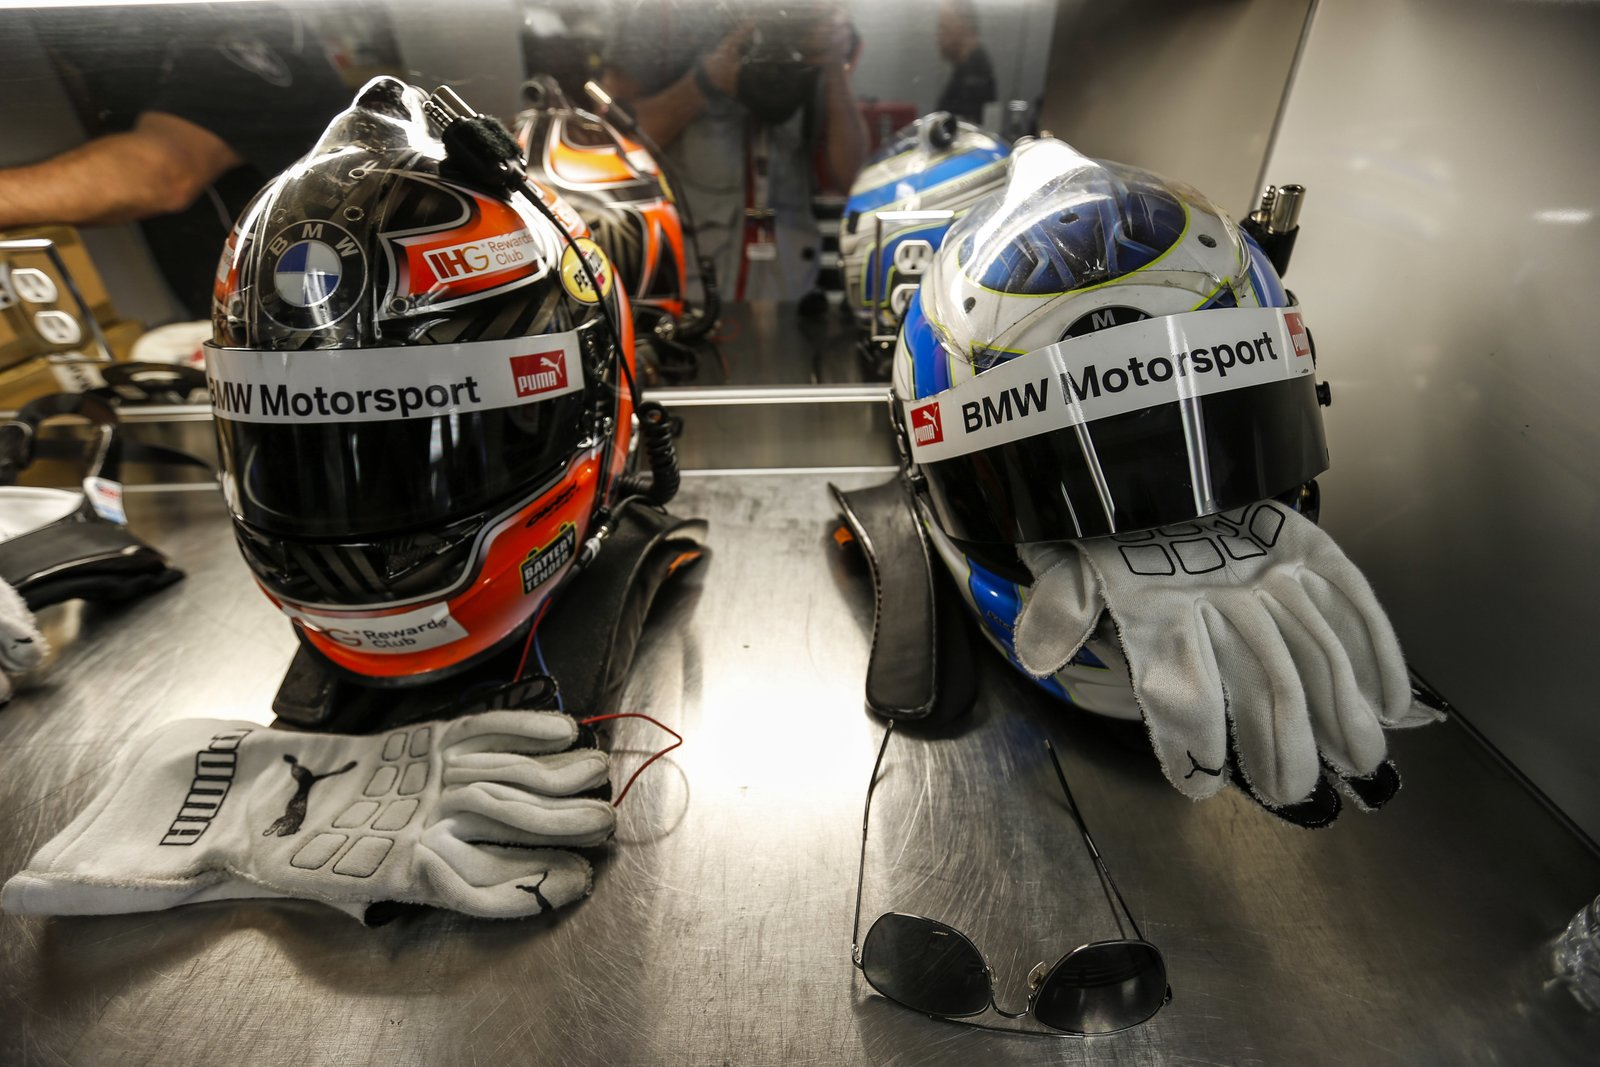 In the BMW motorhome, fans are directed at helmets to dry off the sweat.